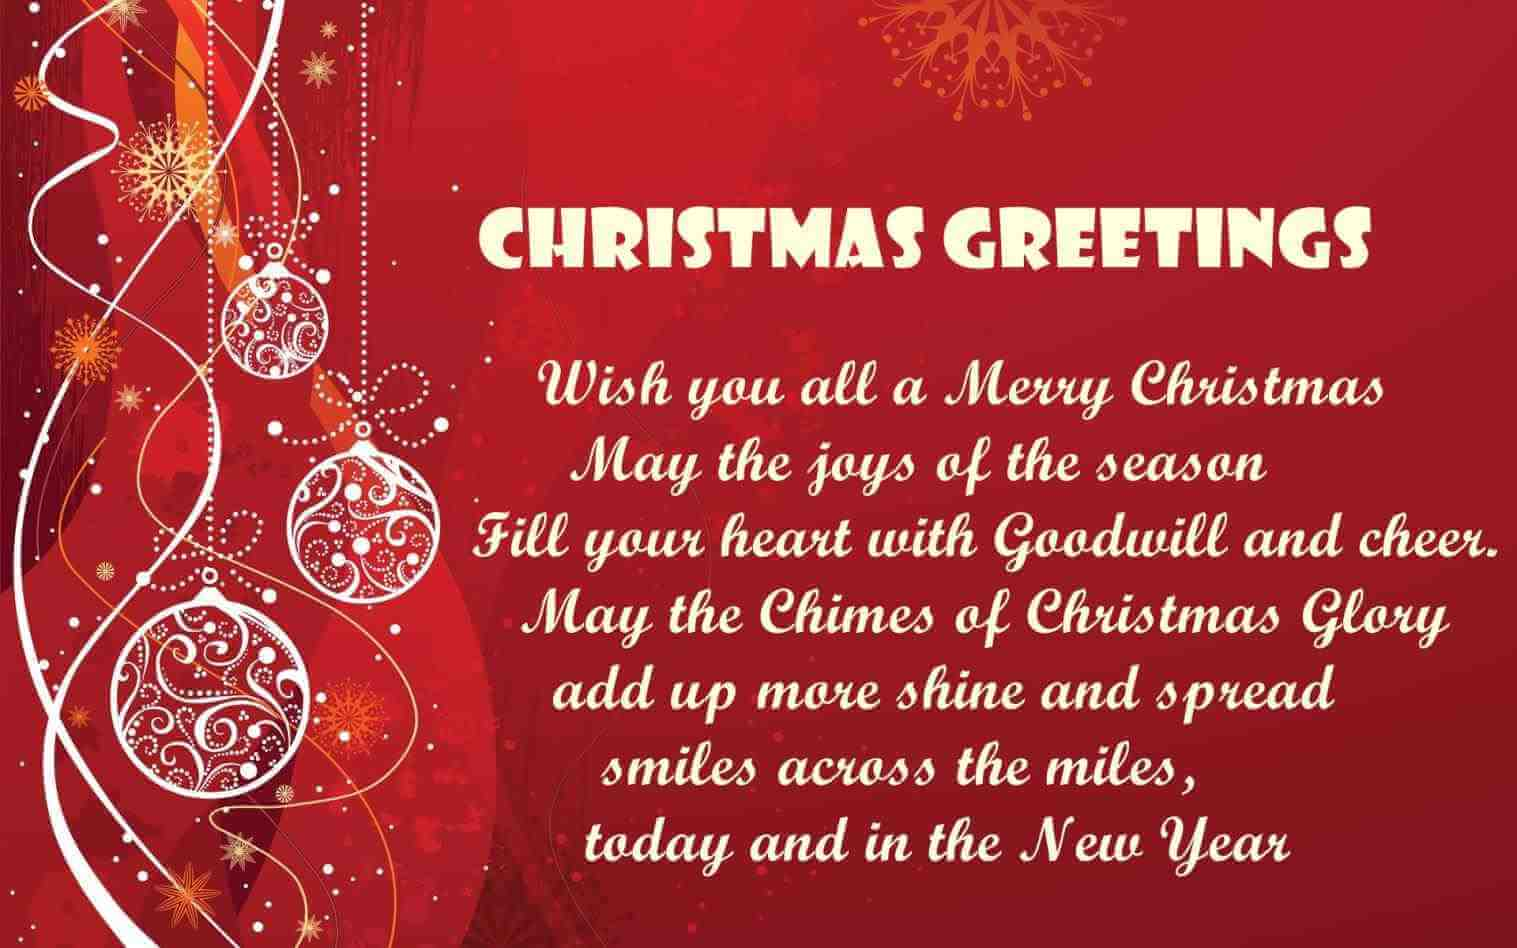 Merry Christmas Messages 2018 Christmas 2018 Sms Msg For Friends